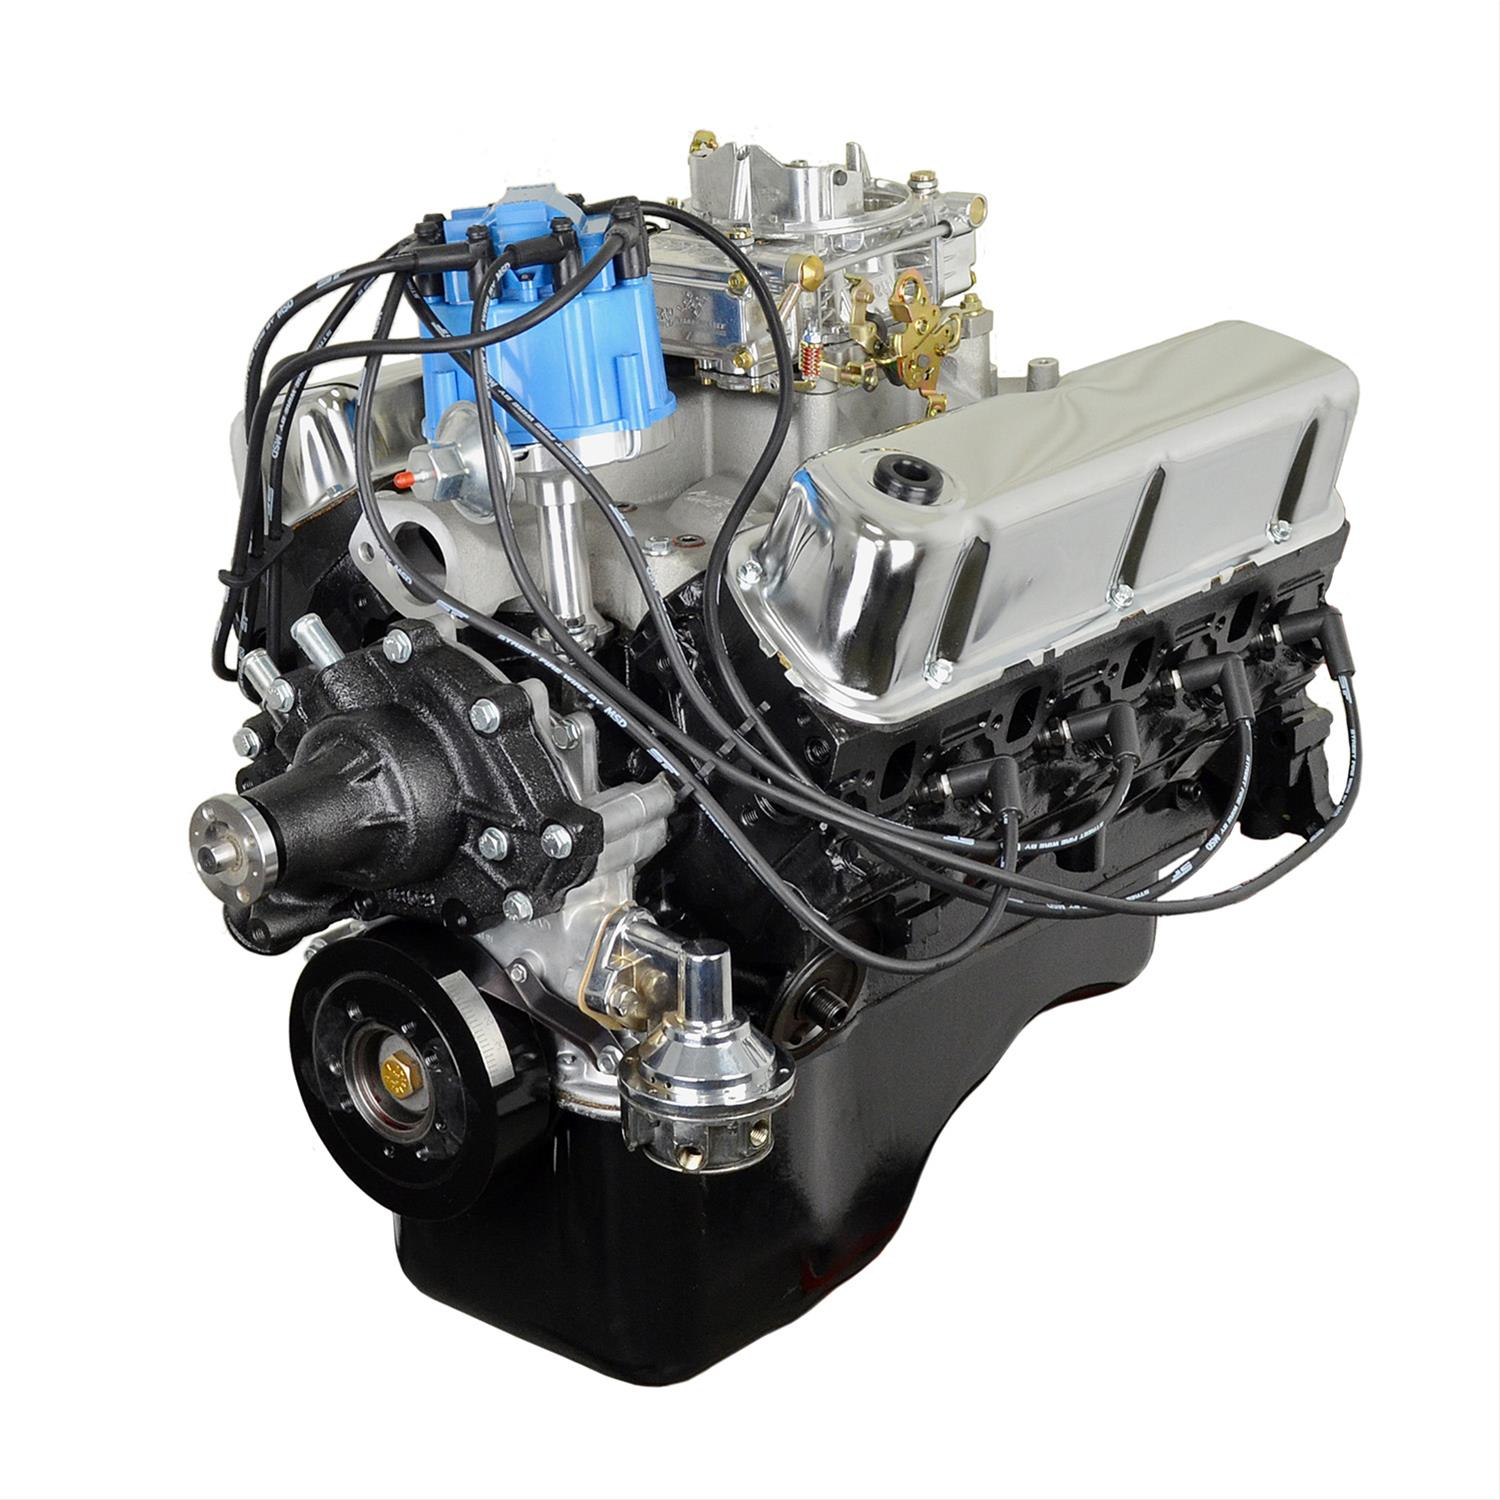 Atk High Performance 1968 74 Ford 302 Stock Drop In Long Block Crate Wiring Harness Jeep Engines Hp99f Free Shipping On Orders Over 49 At Summit Racing